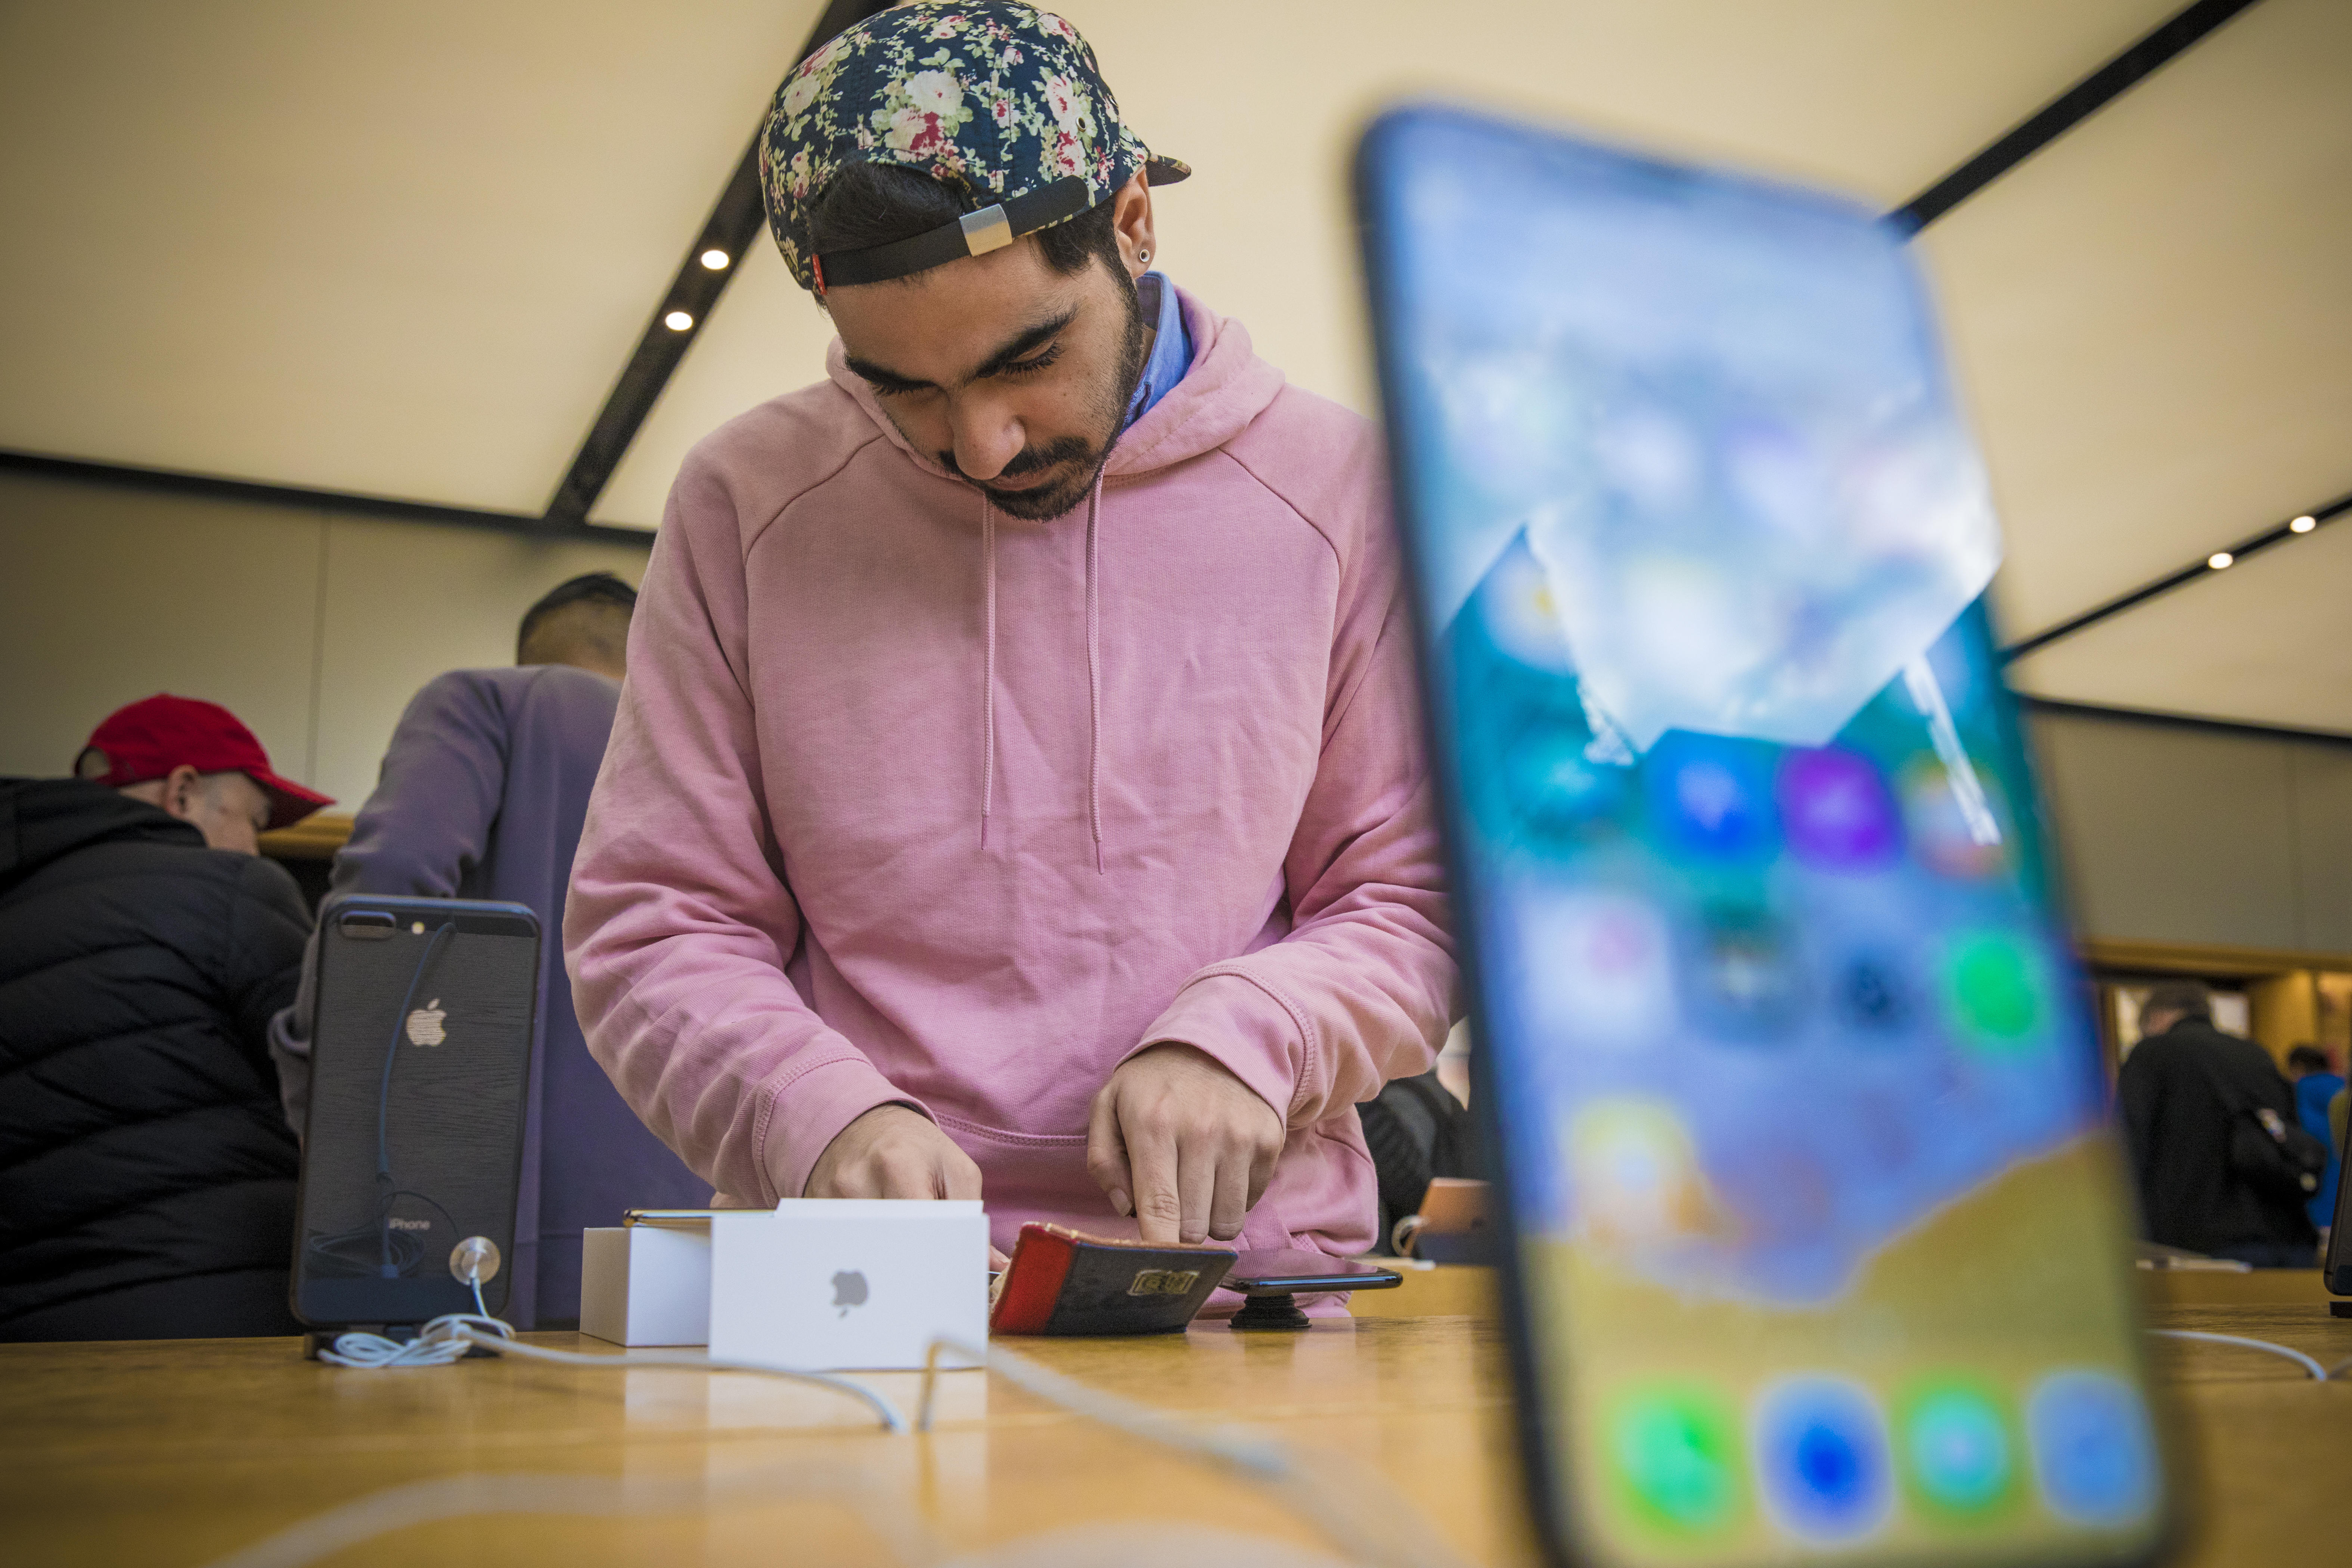 The arrival of Apple's iPhone X was met with the typical late-night preorders and lines outside stores when it was first released, but reports suggest demand has fallen short of the company's expectations.